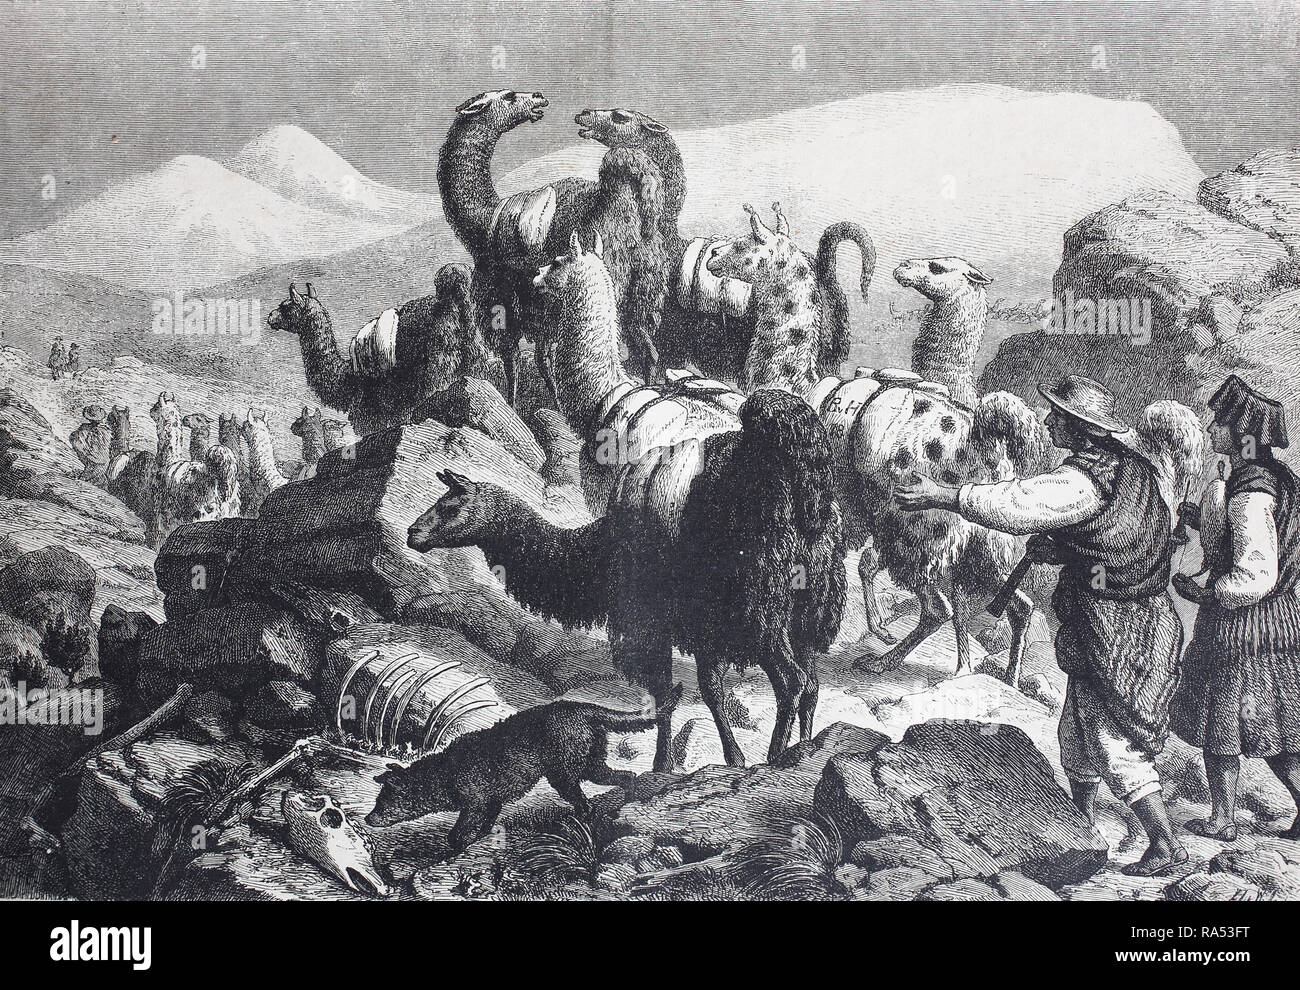 Digital improved reproduction, transport of copper ore with lamas in the Cordilleras, South America, Transport von Kupfererz durch Lamas in den Kordilleren, Südamerika, from an original print from the year 1865, 19th century, - Stock Image